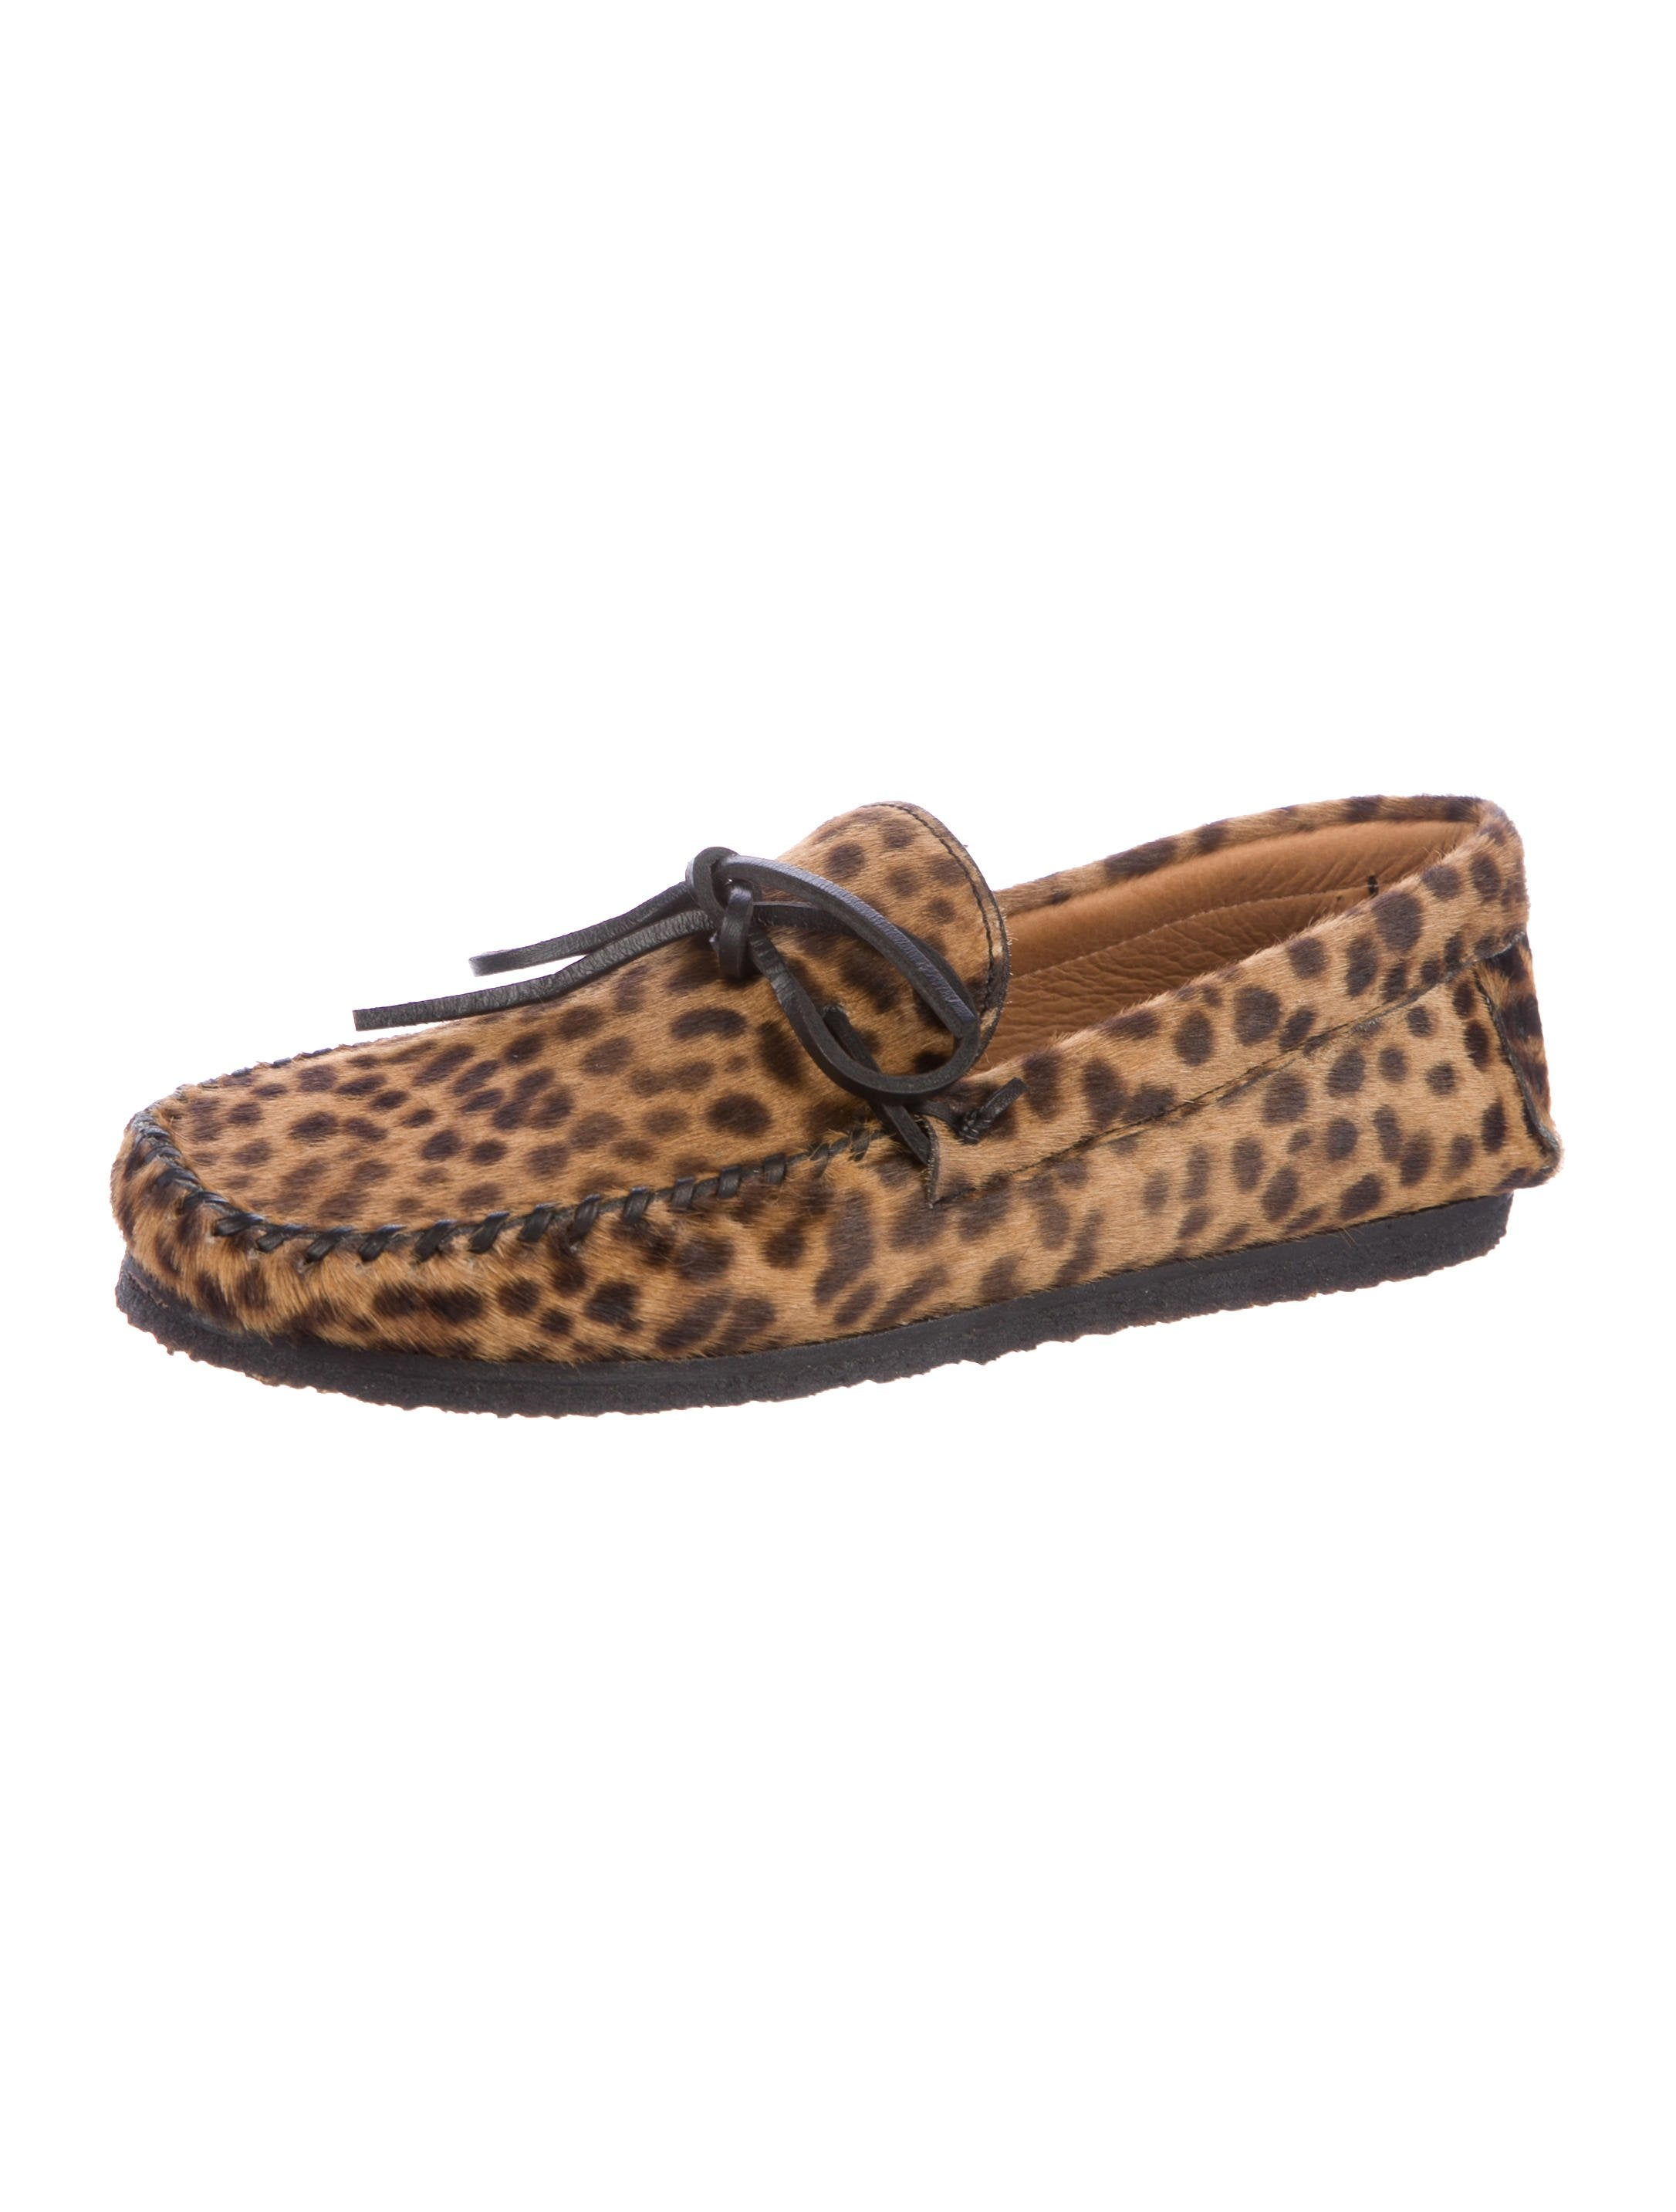 Étoile Isabel Marant Printed Ponyhair Moccasins sale 2015 new cheap new 2015 new sale online eastbay cheap price wholesale online UAYhk